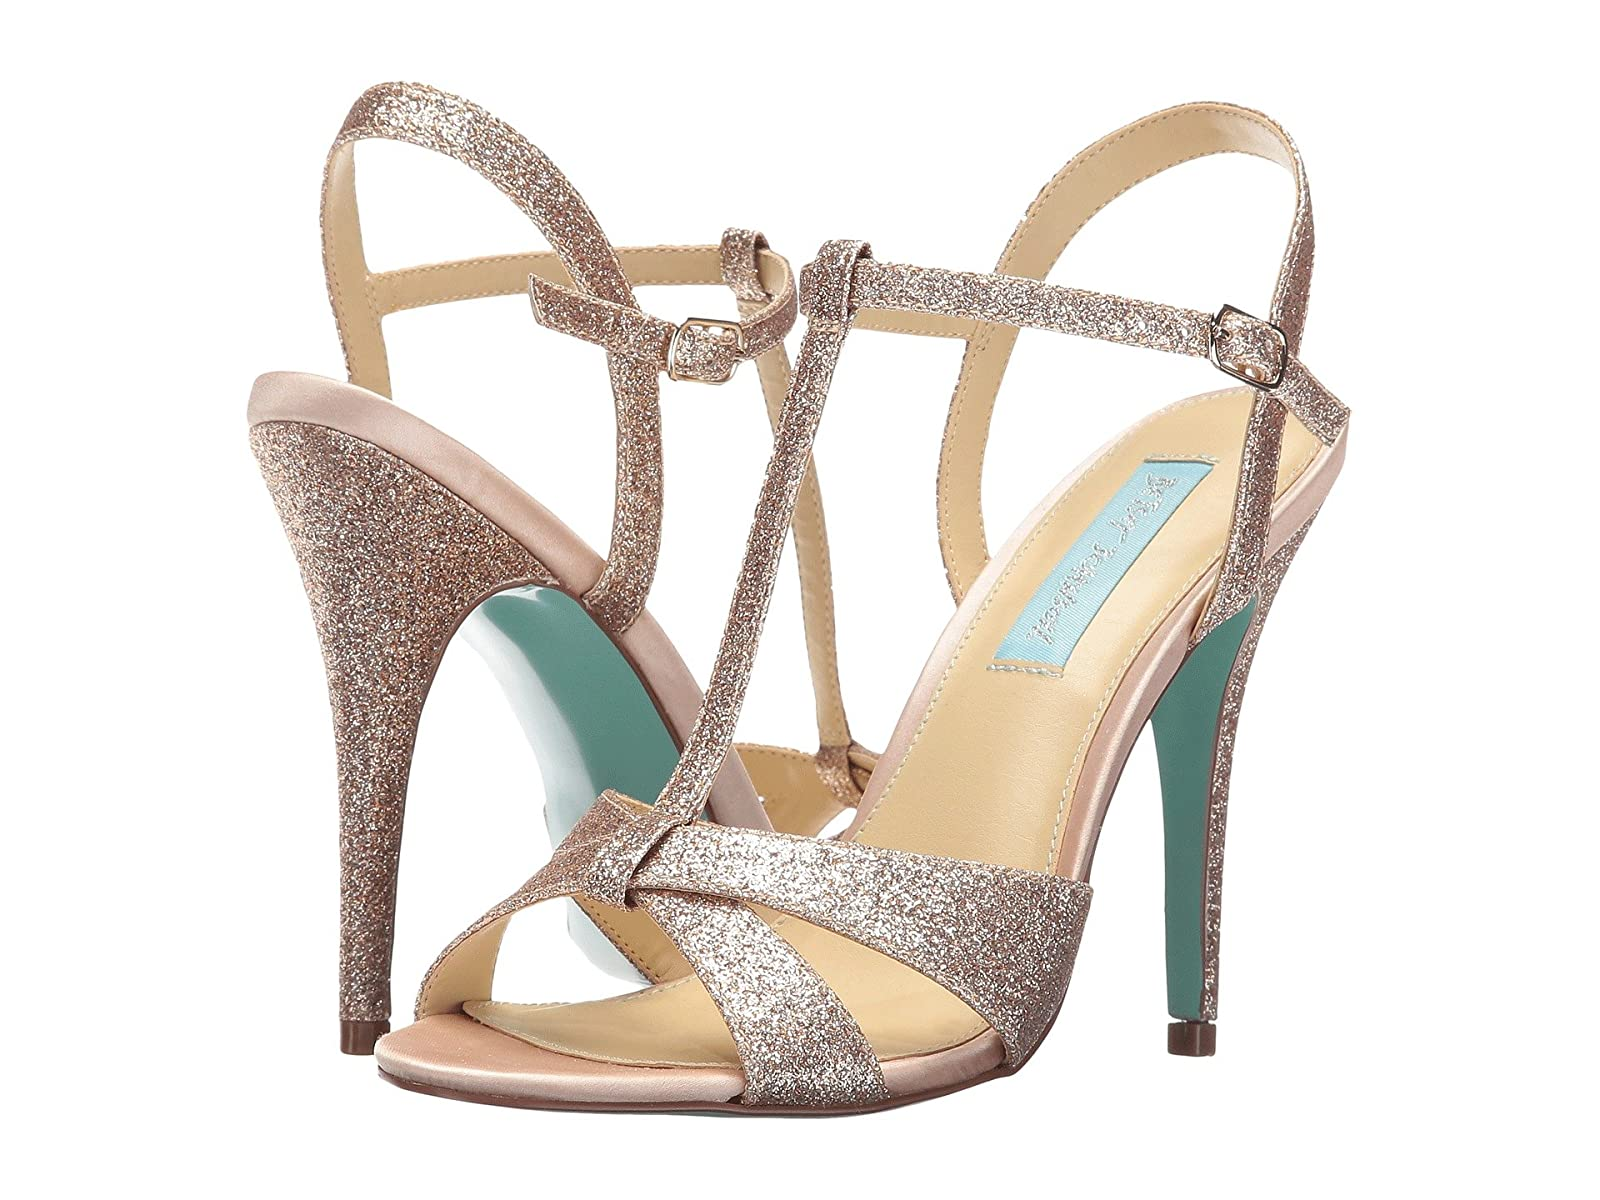 Blue by Betsey Johnson TeenaCheap and distinctive eye-catching shoes